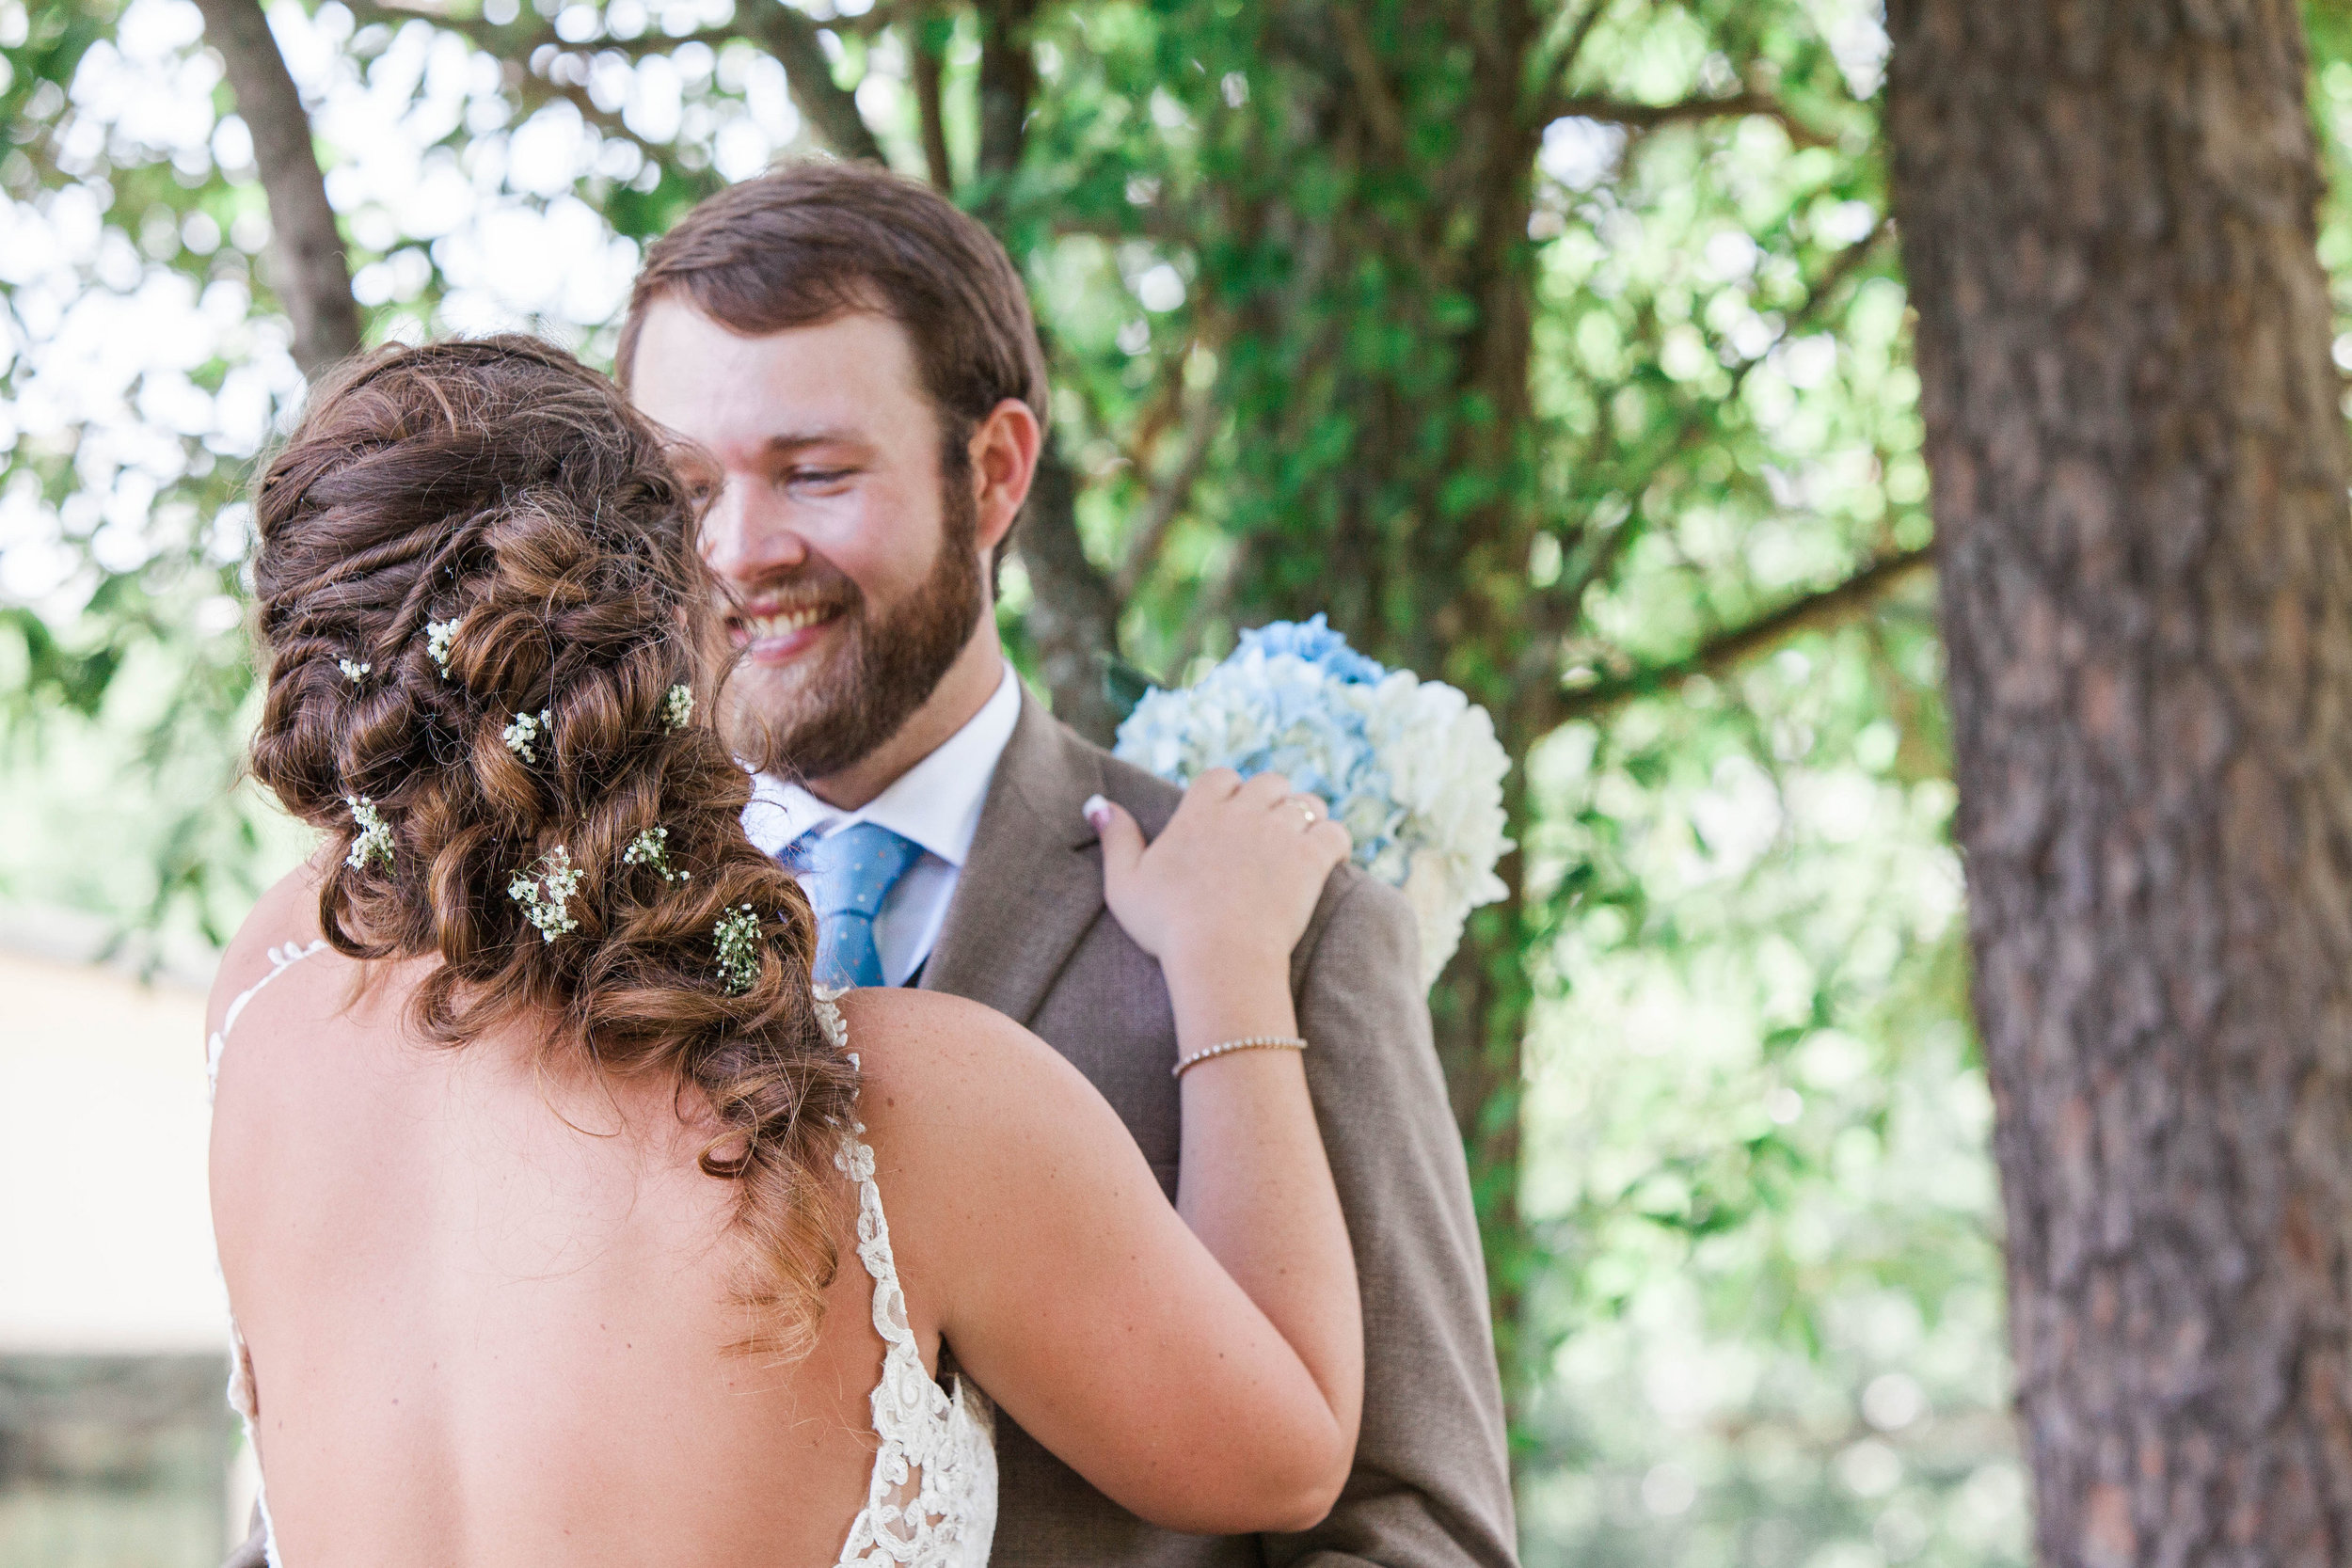 siverwedding-siverwedding-0467.jpg